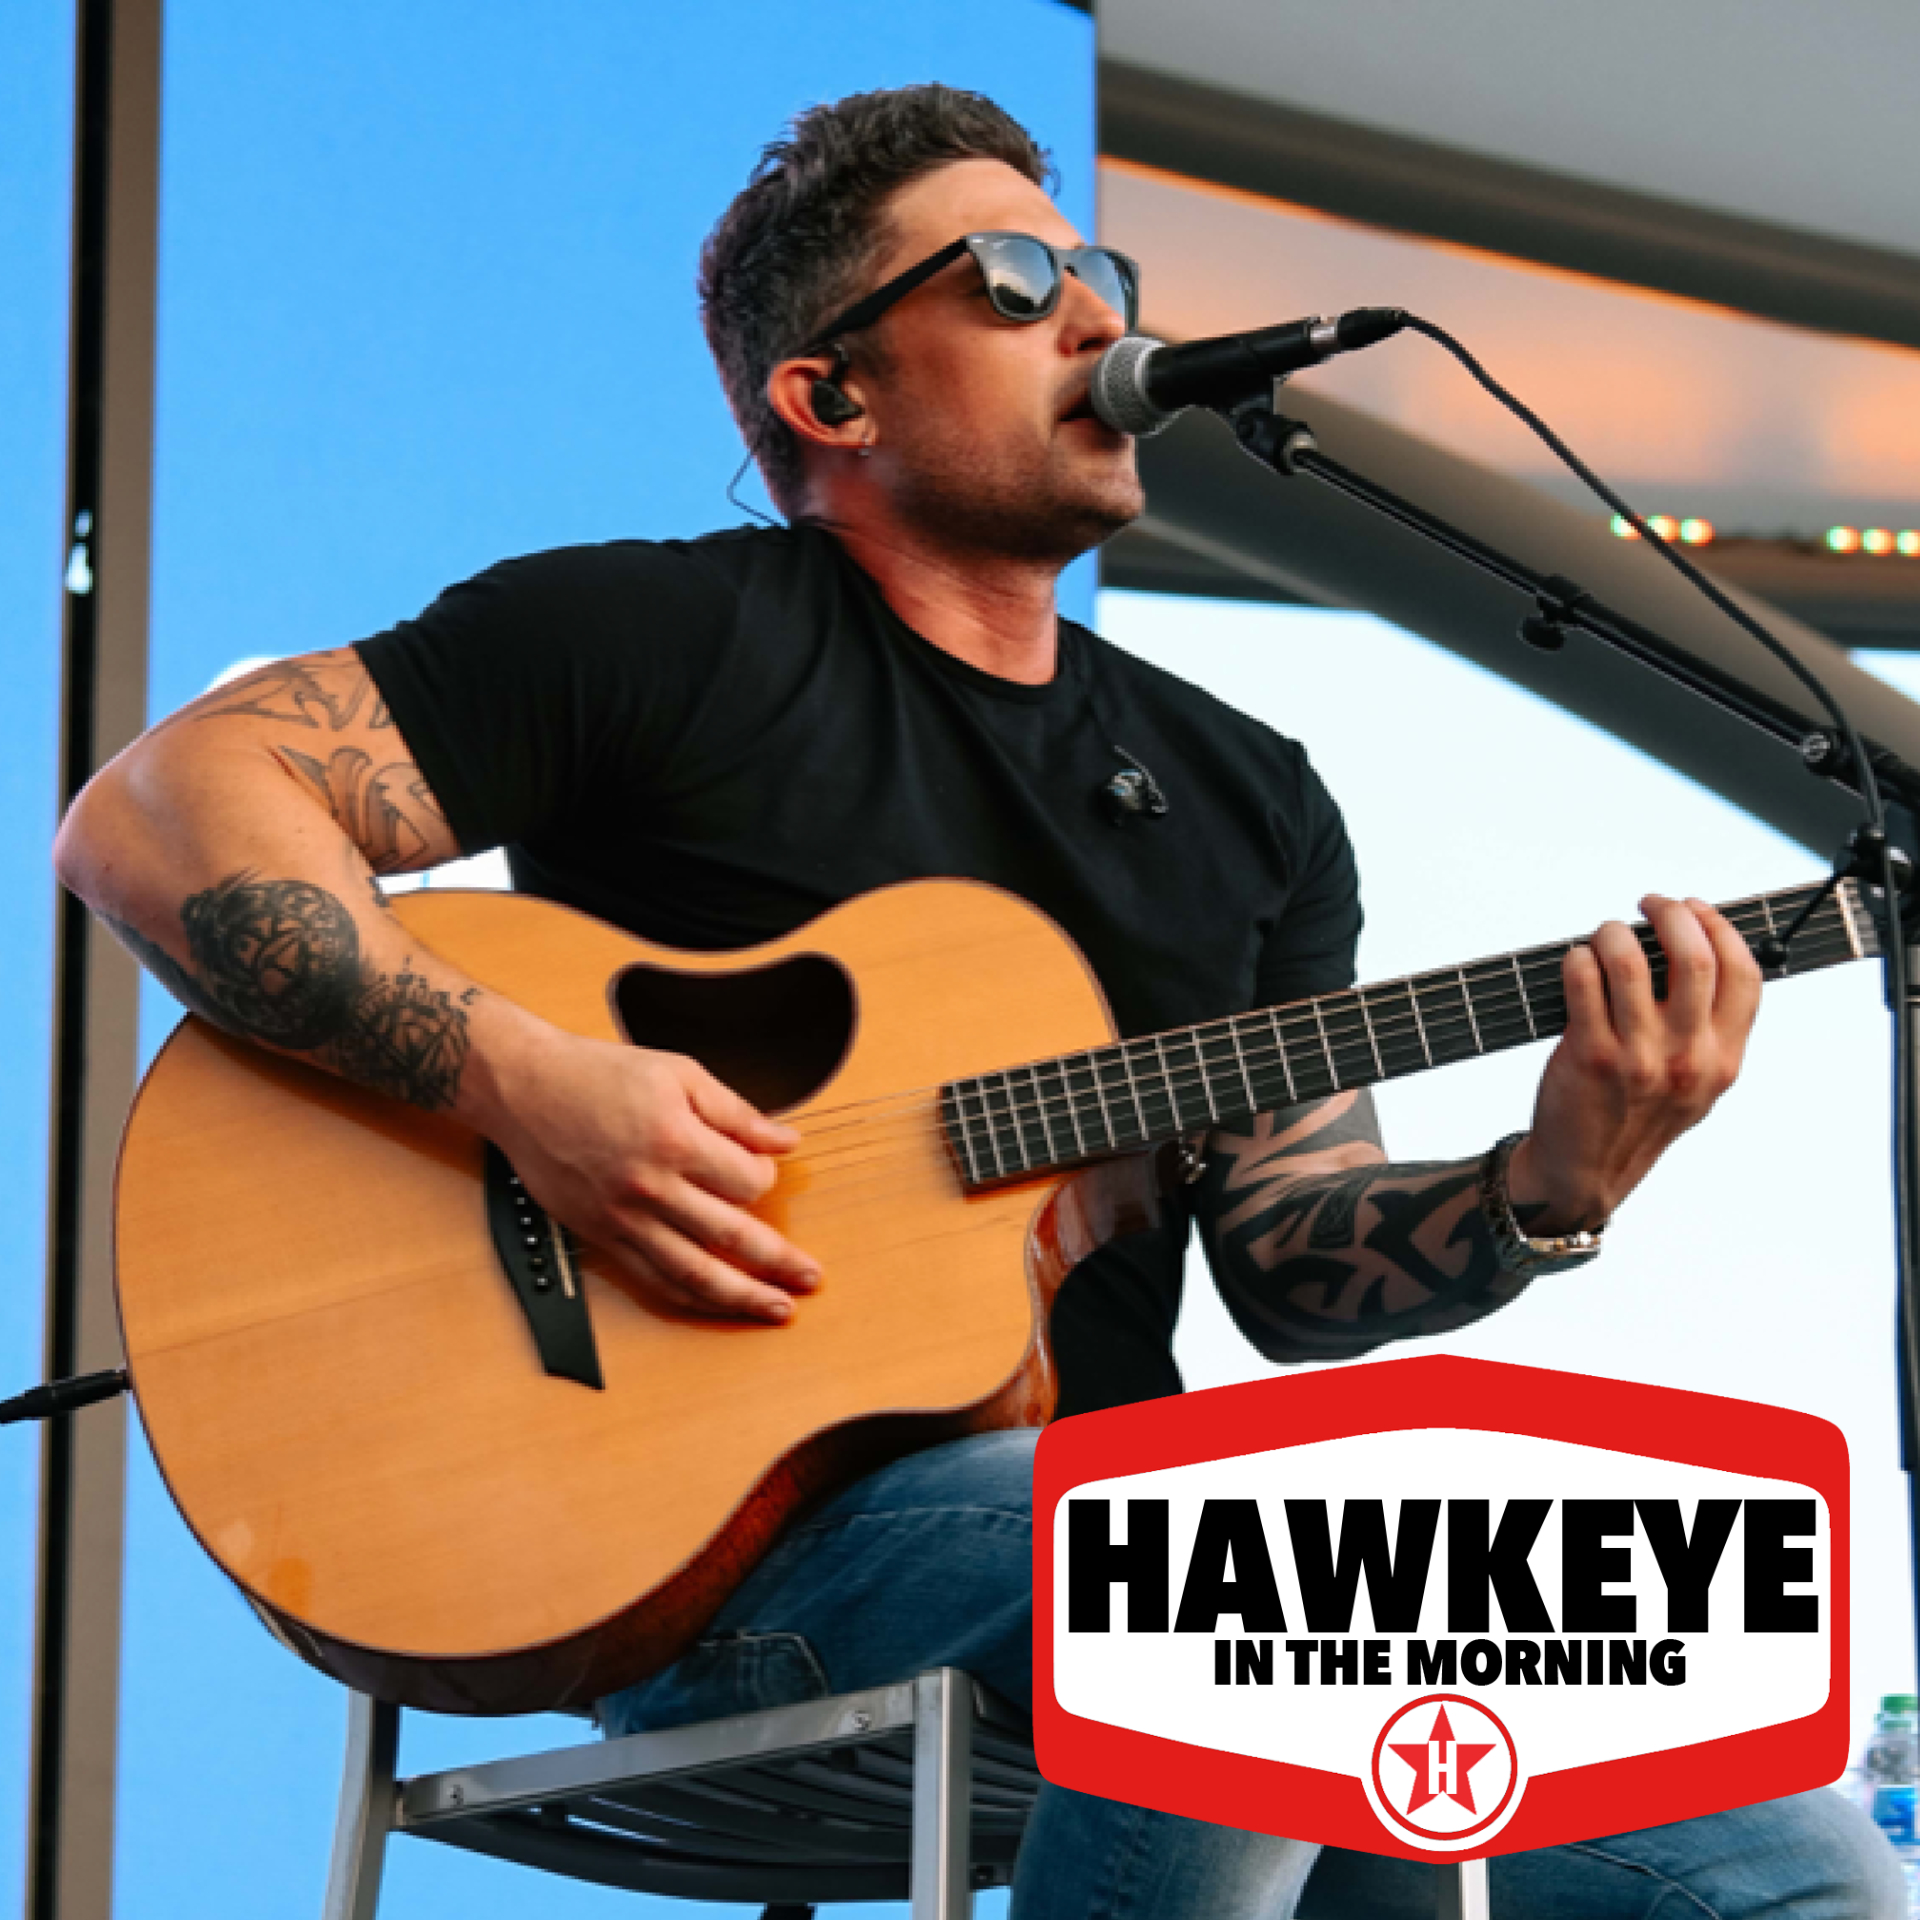 Did Michael Ray remember his promise to Hawkeye?